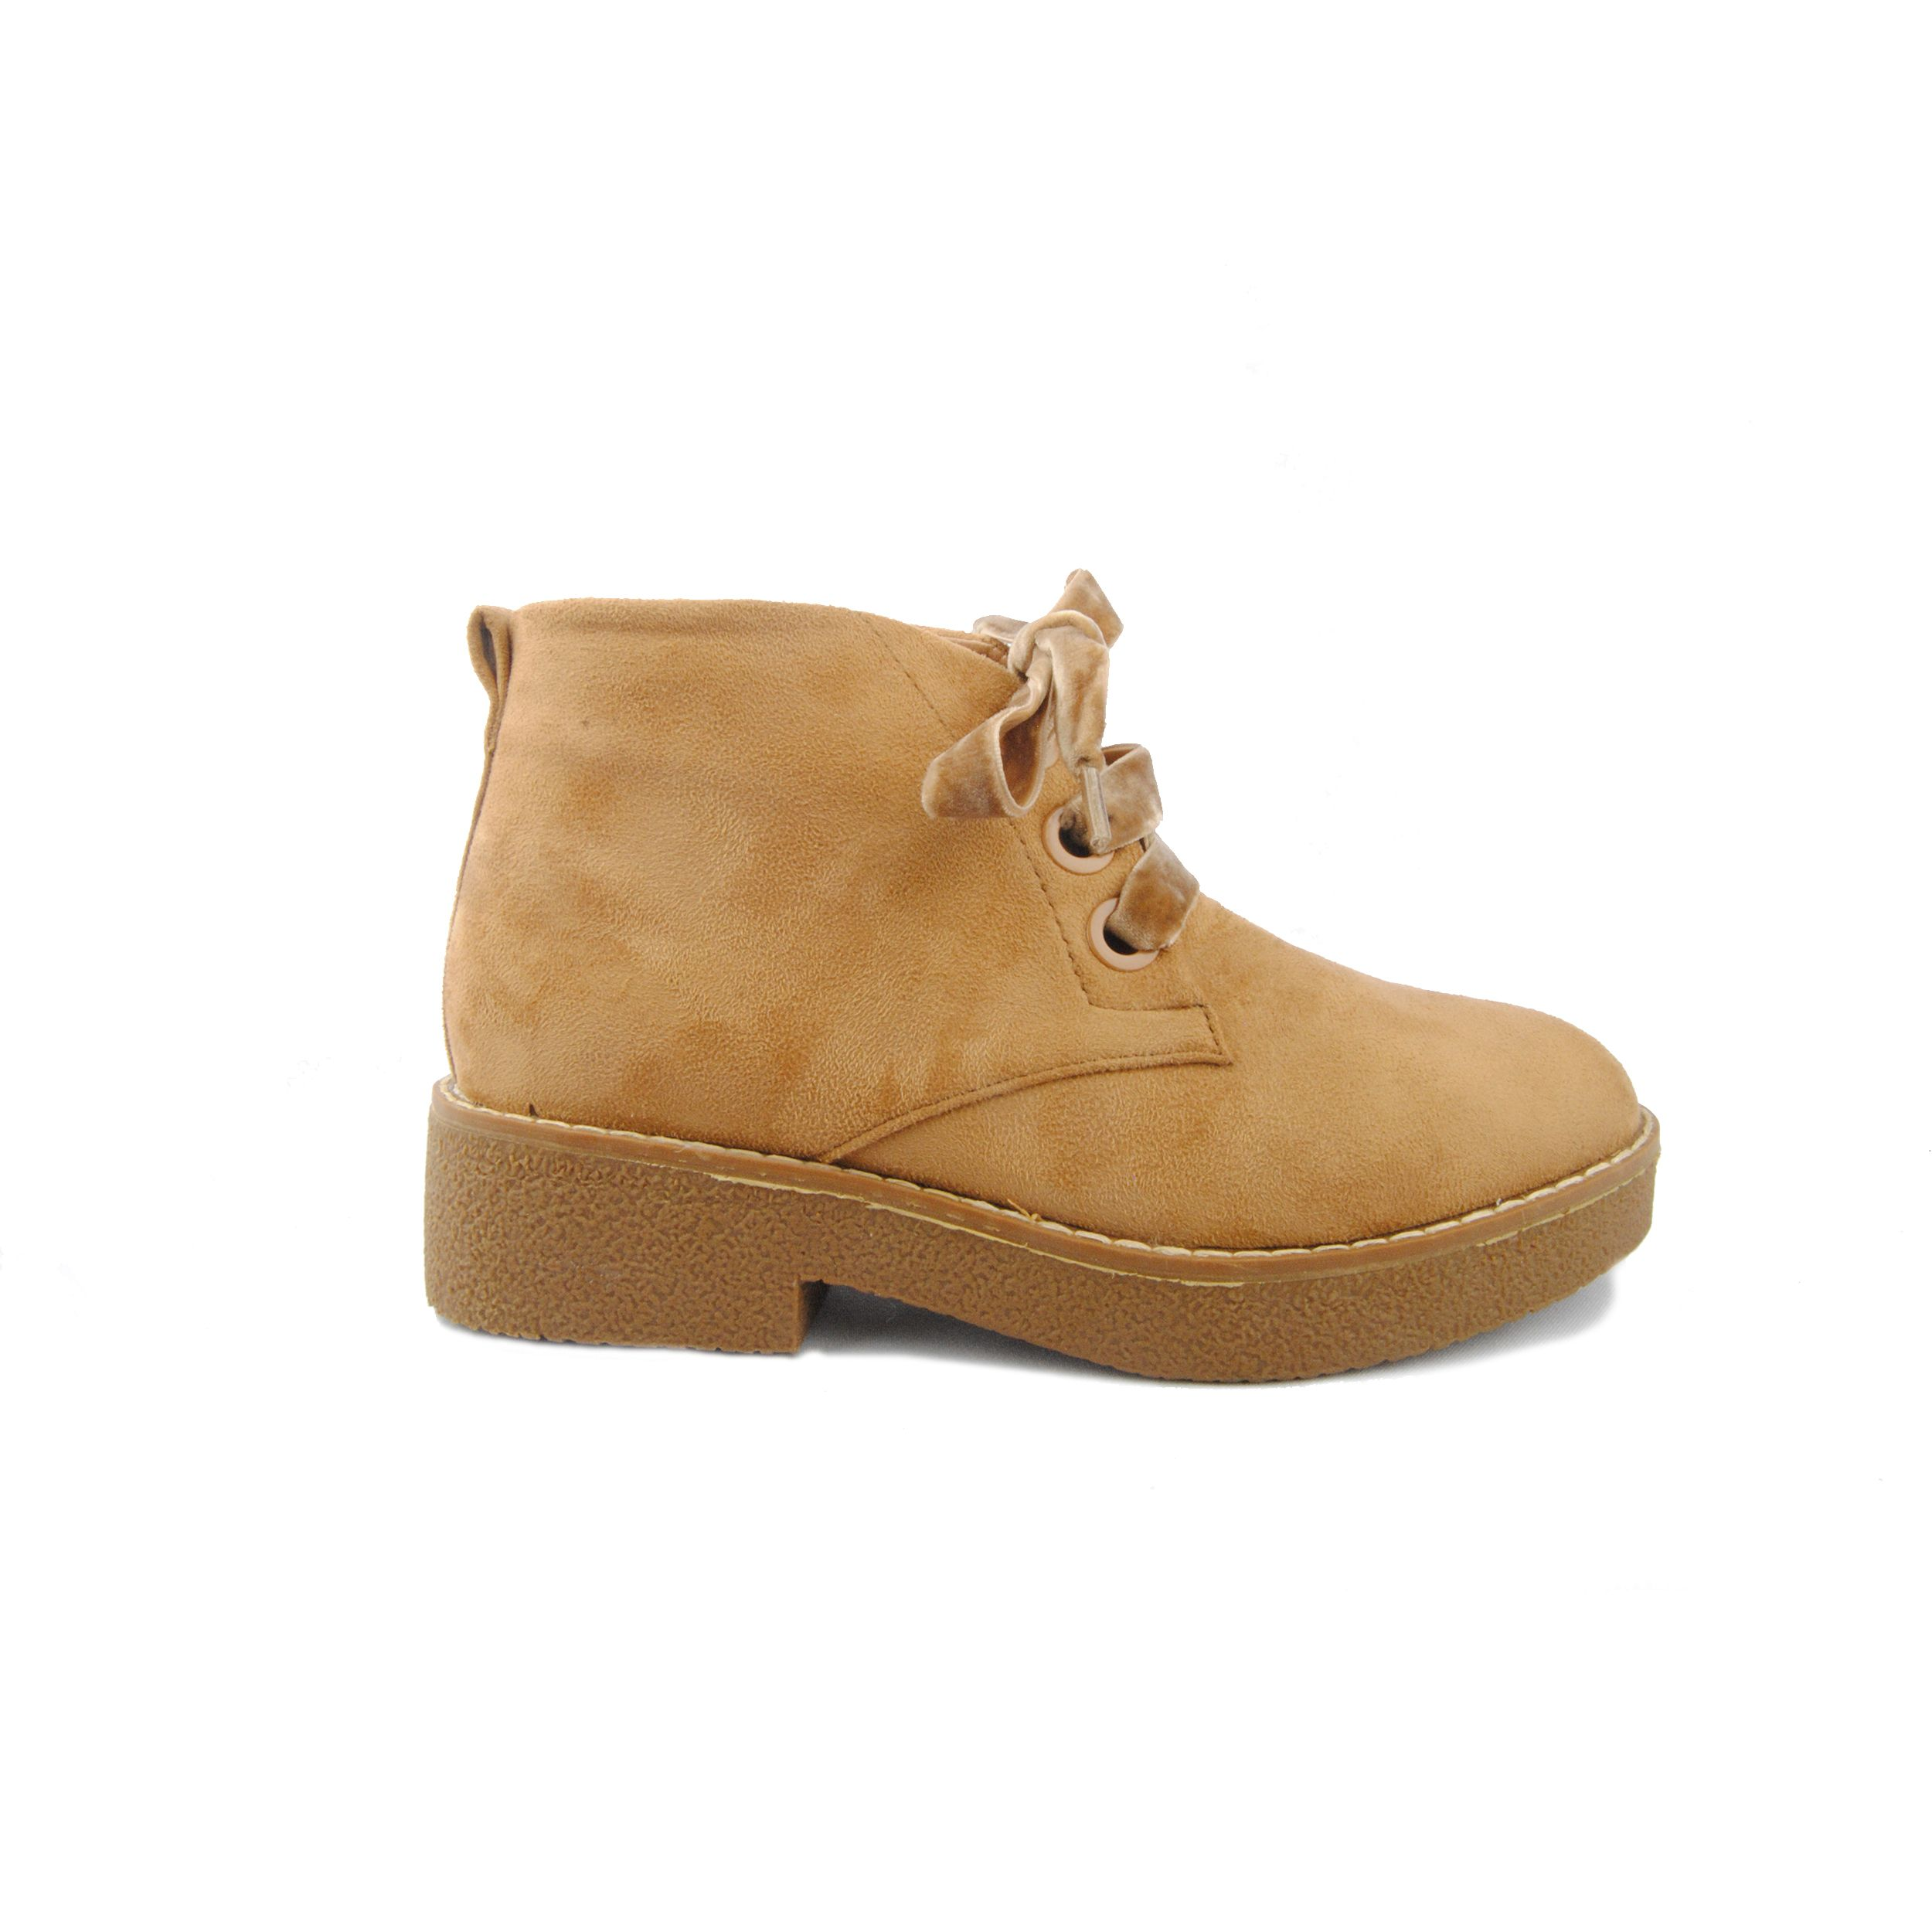 Montevita Lace Up Ankle Boot in Camel